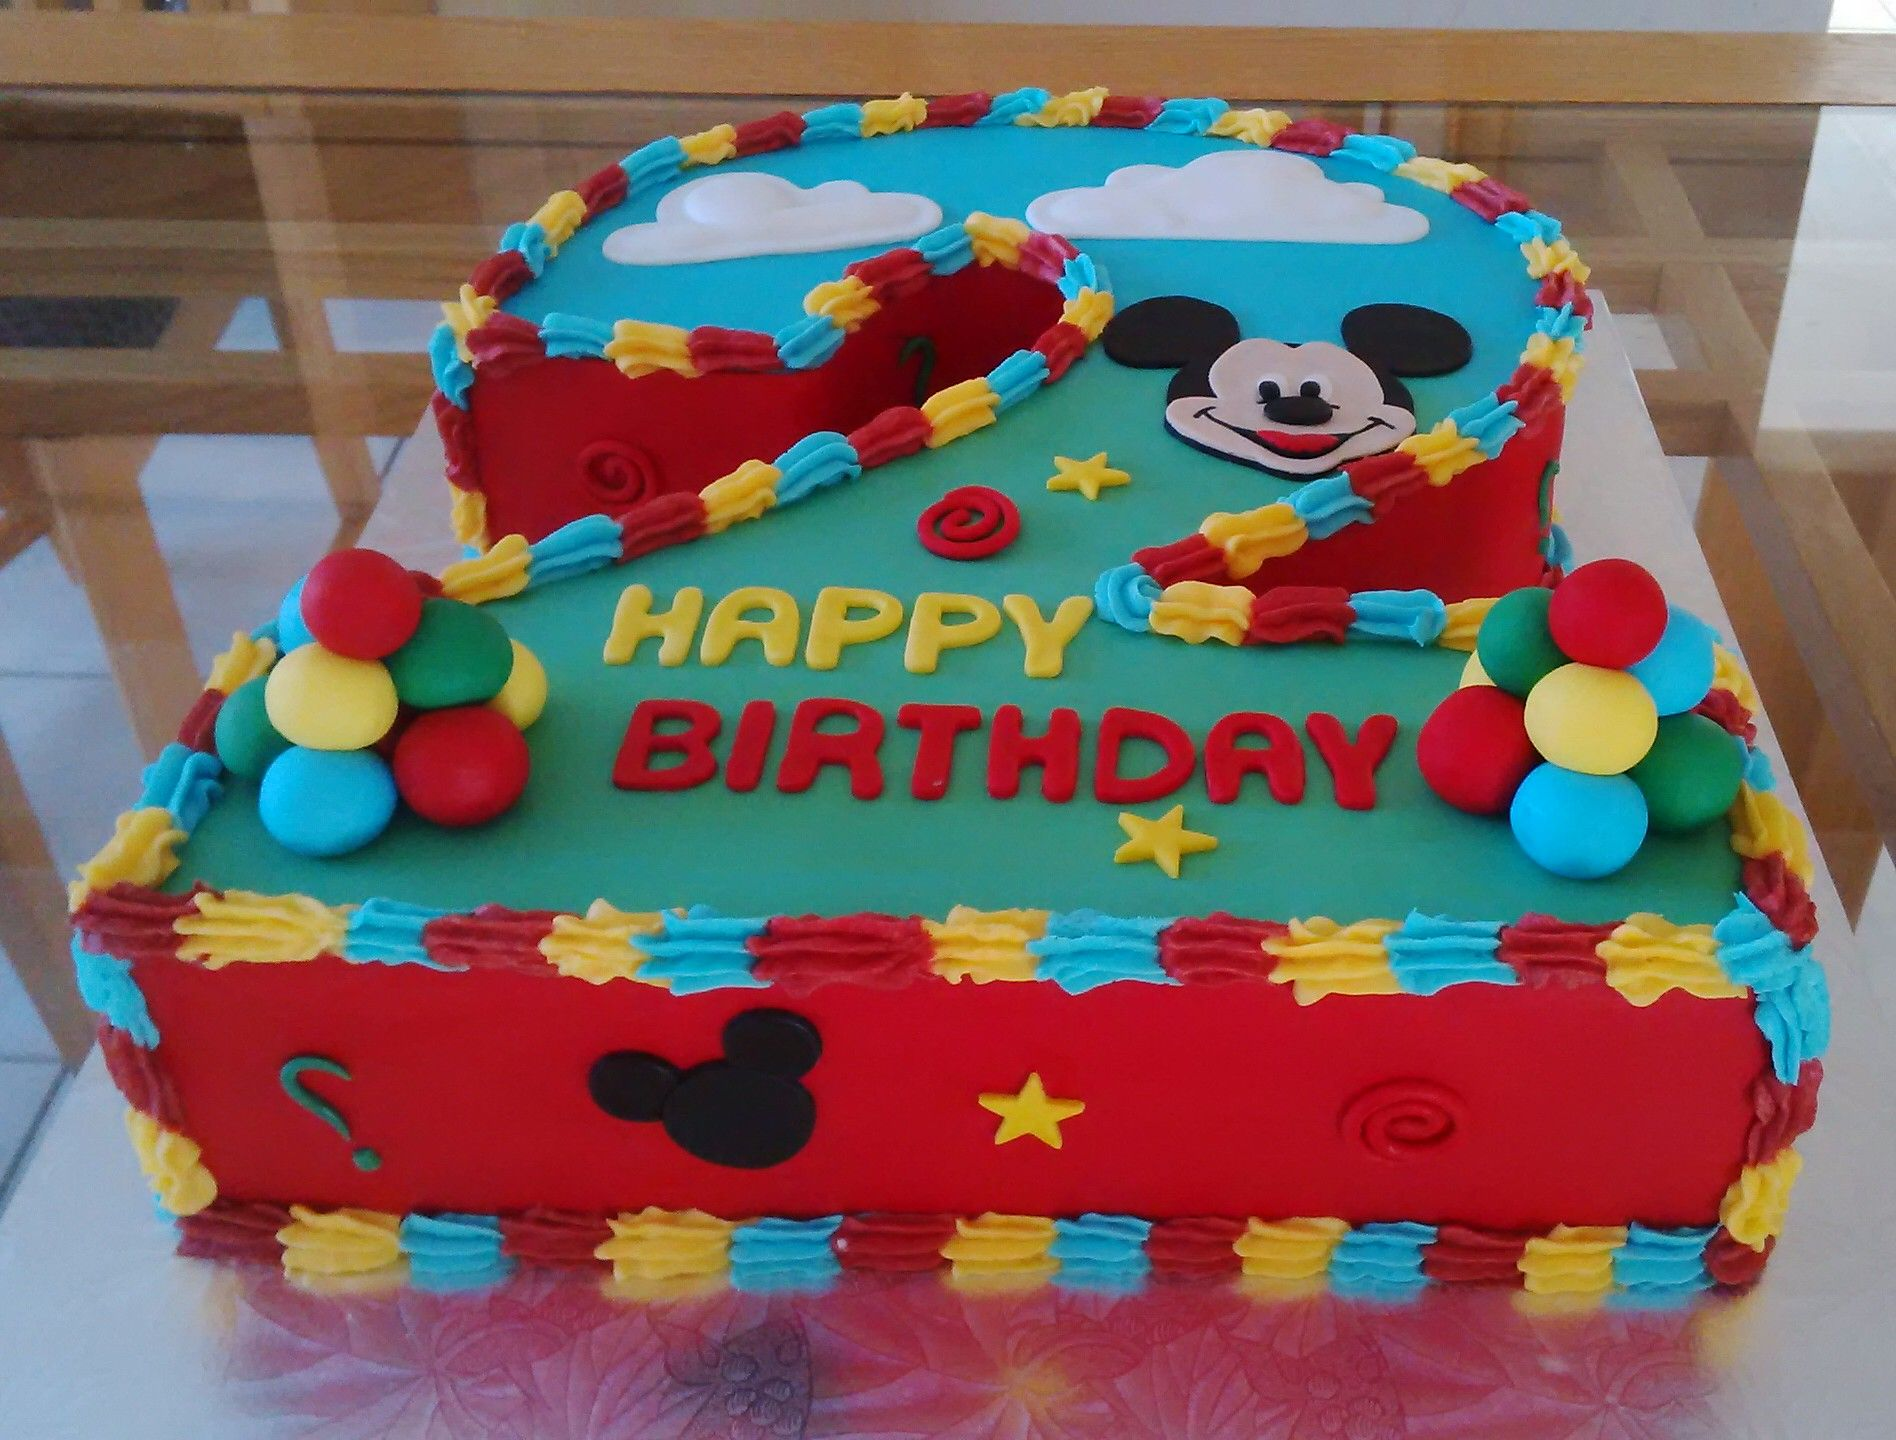 2 Year Birthday Ideas Tiered Cakes Vanilla Pod Birthday Cake Ideas For 2 Year Old